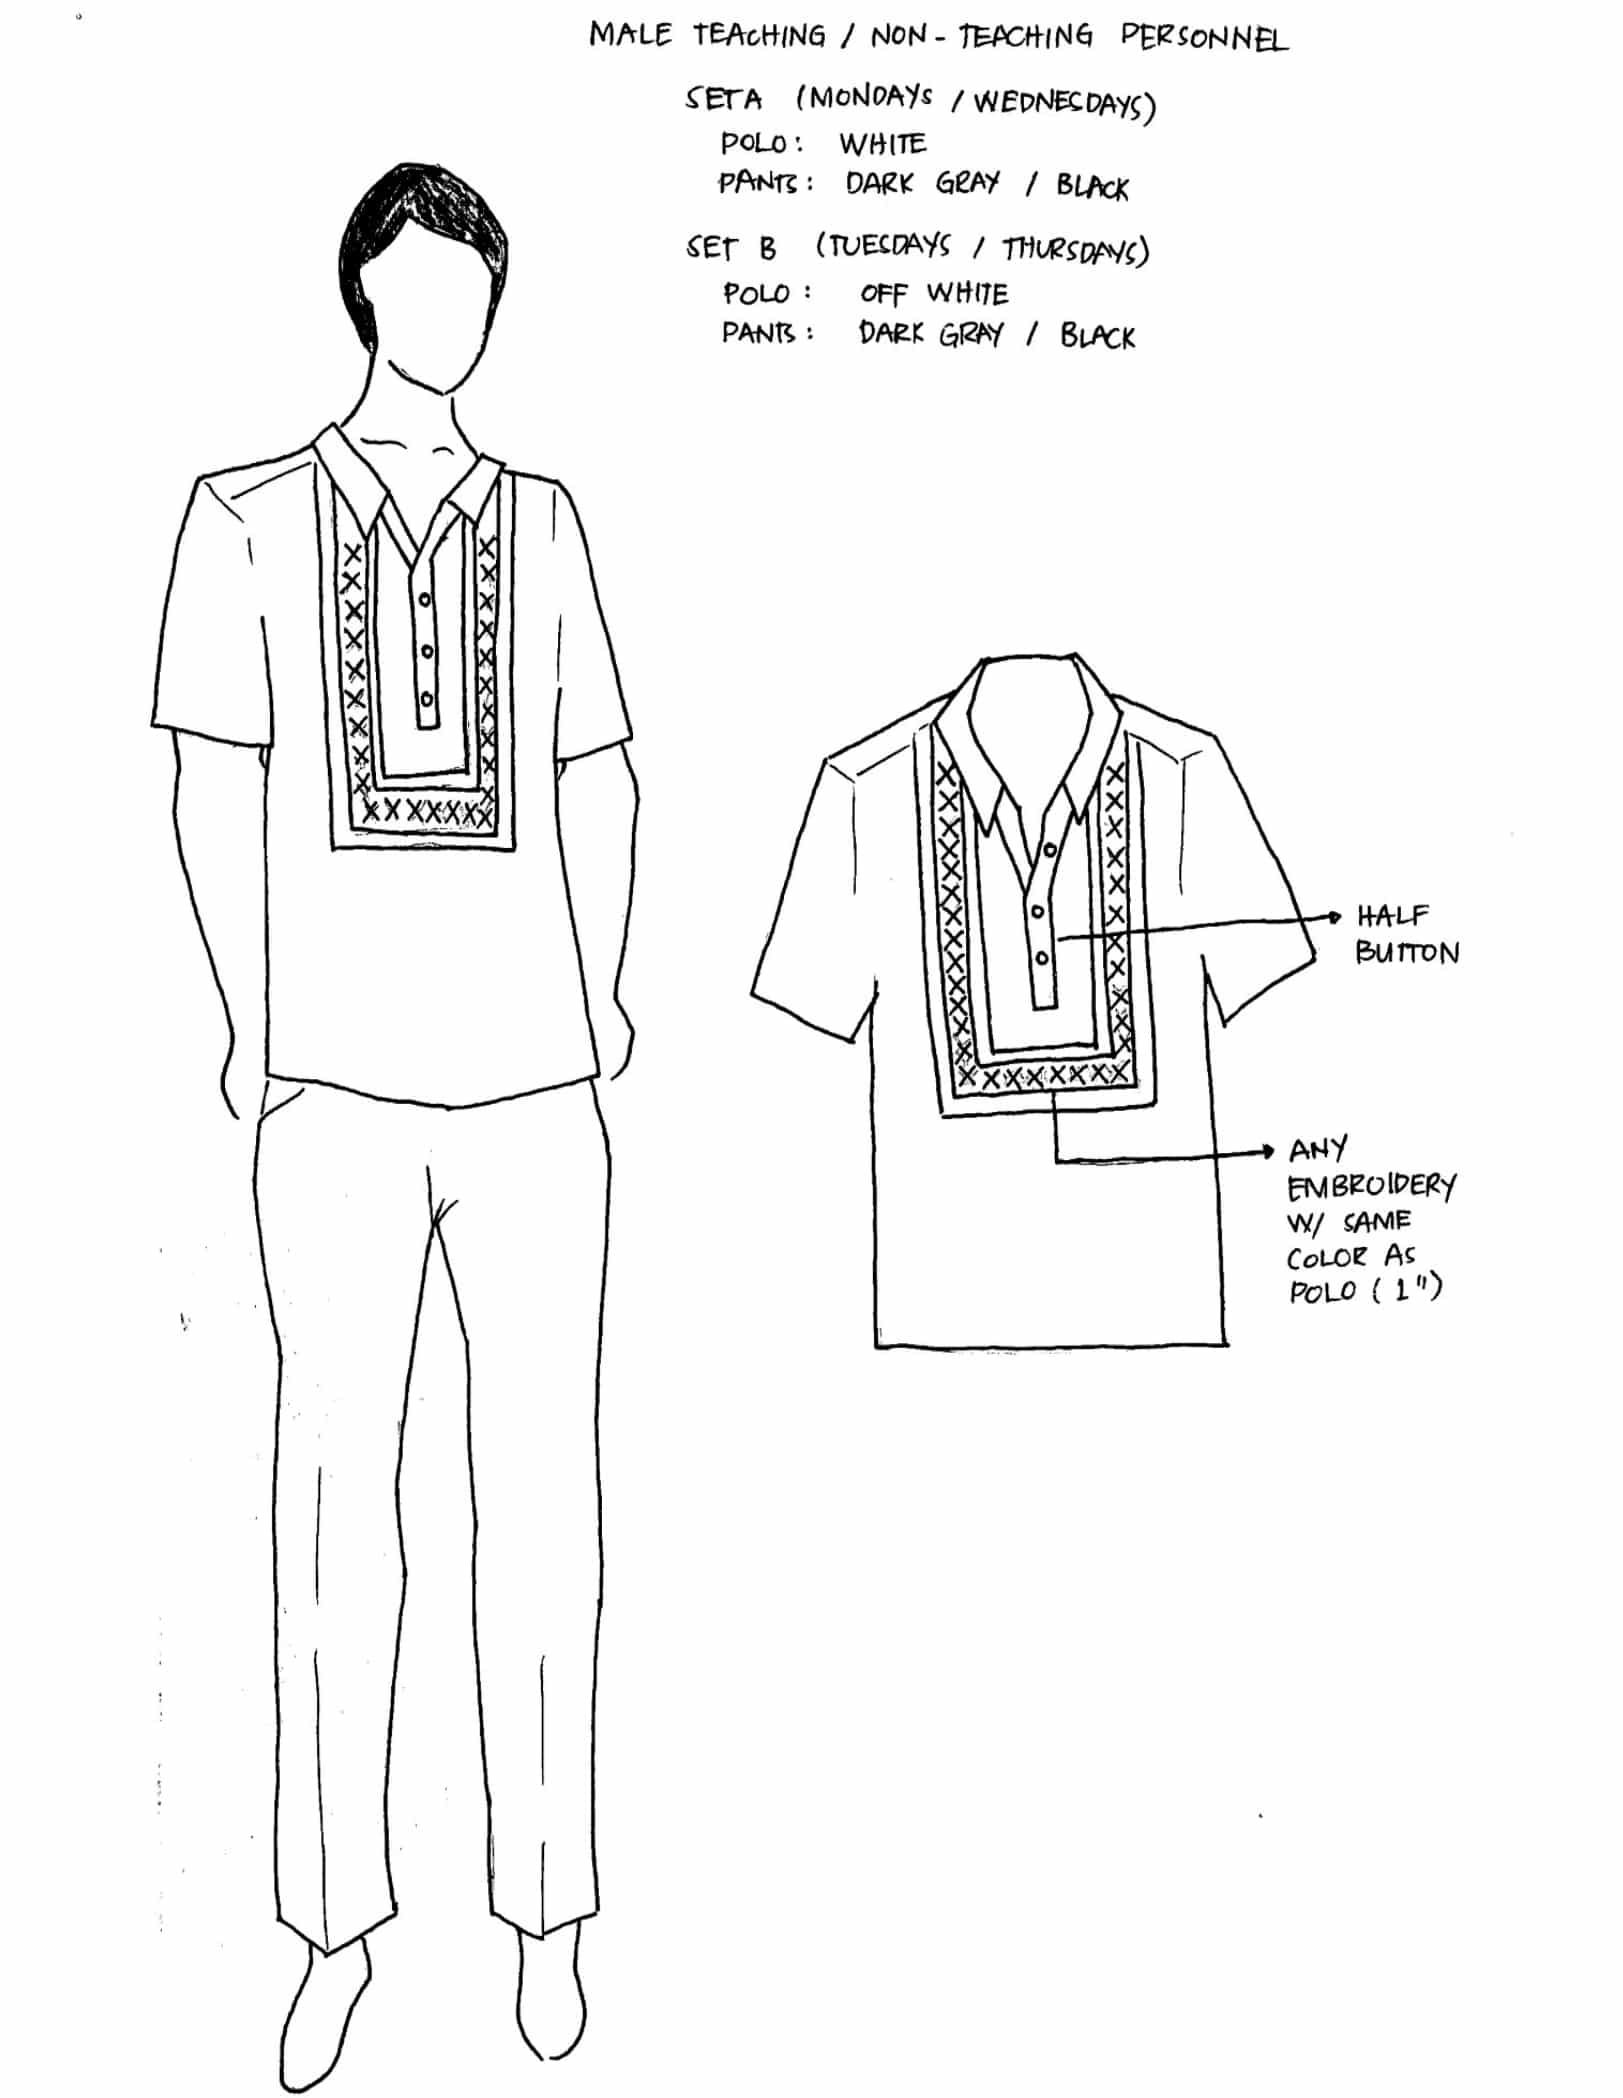 DepEd National Uniforms Male Teaching Non-Teaching Personnel